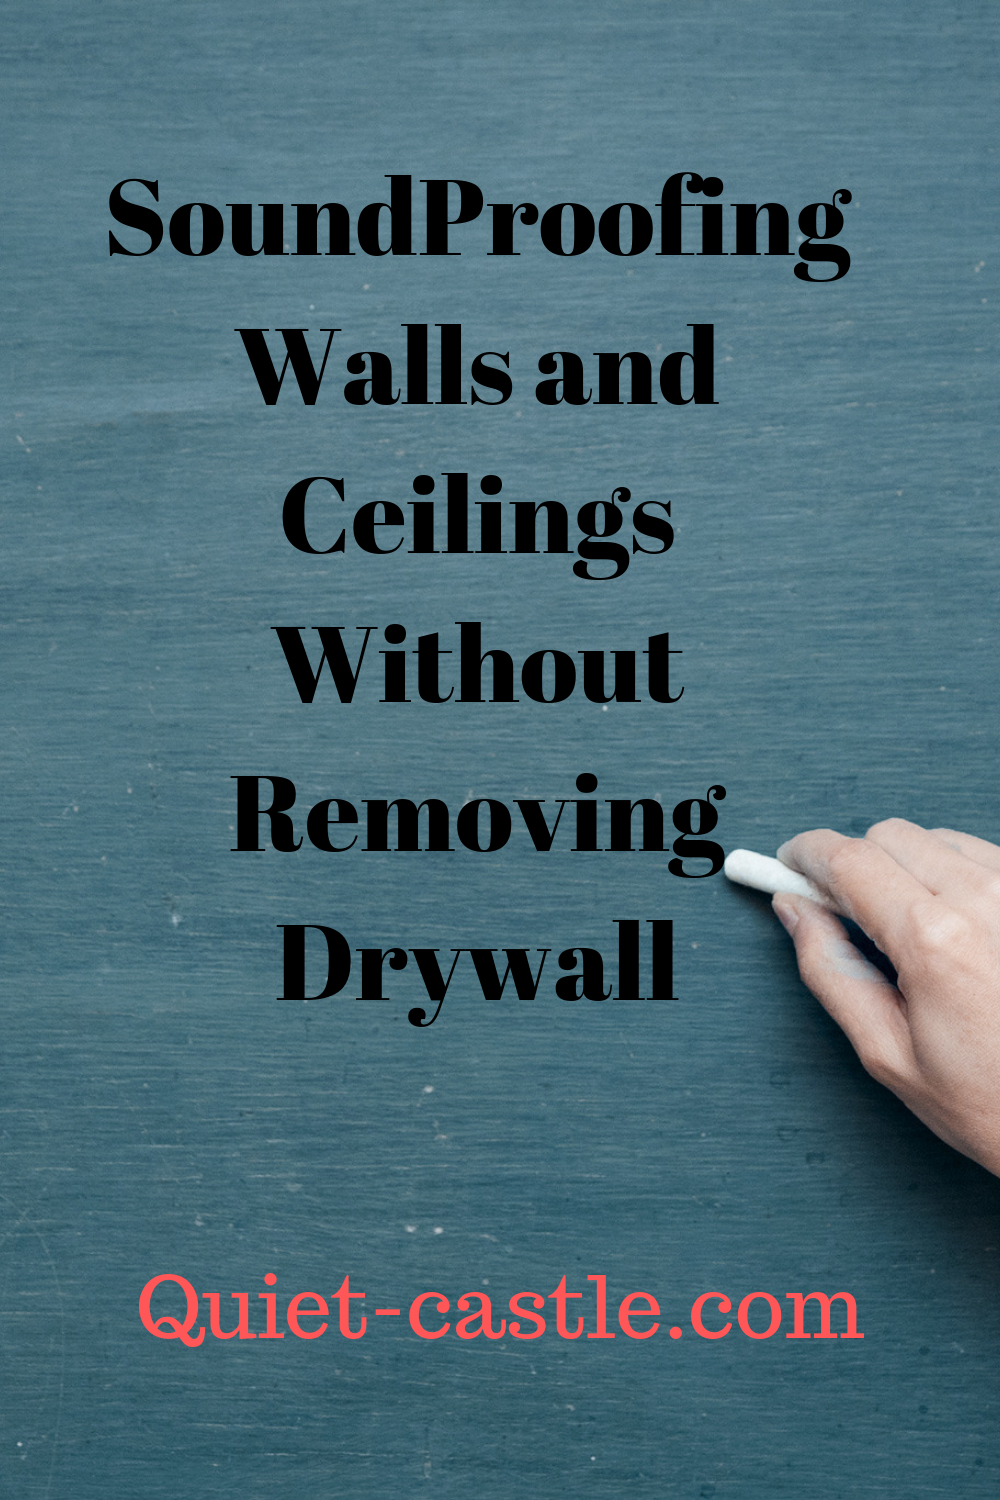 Soundproofing Walls And Ceilings In 2020 Soundproofing Walls Sound Proofing Sound Proof Flooring